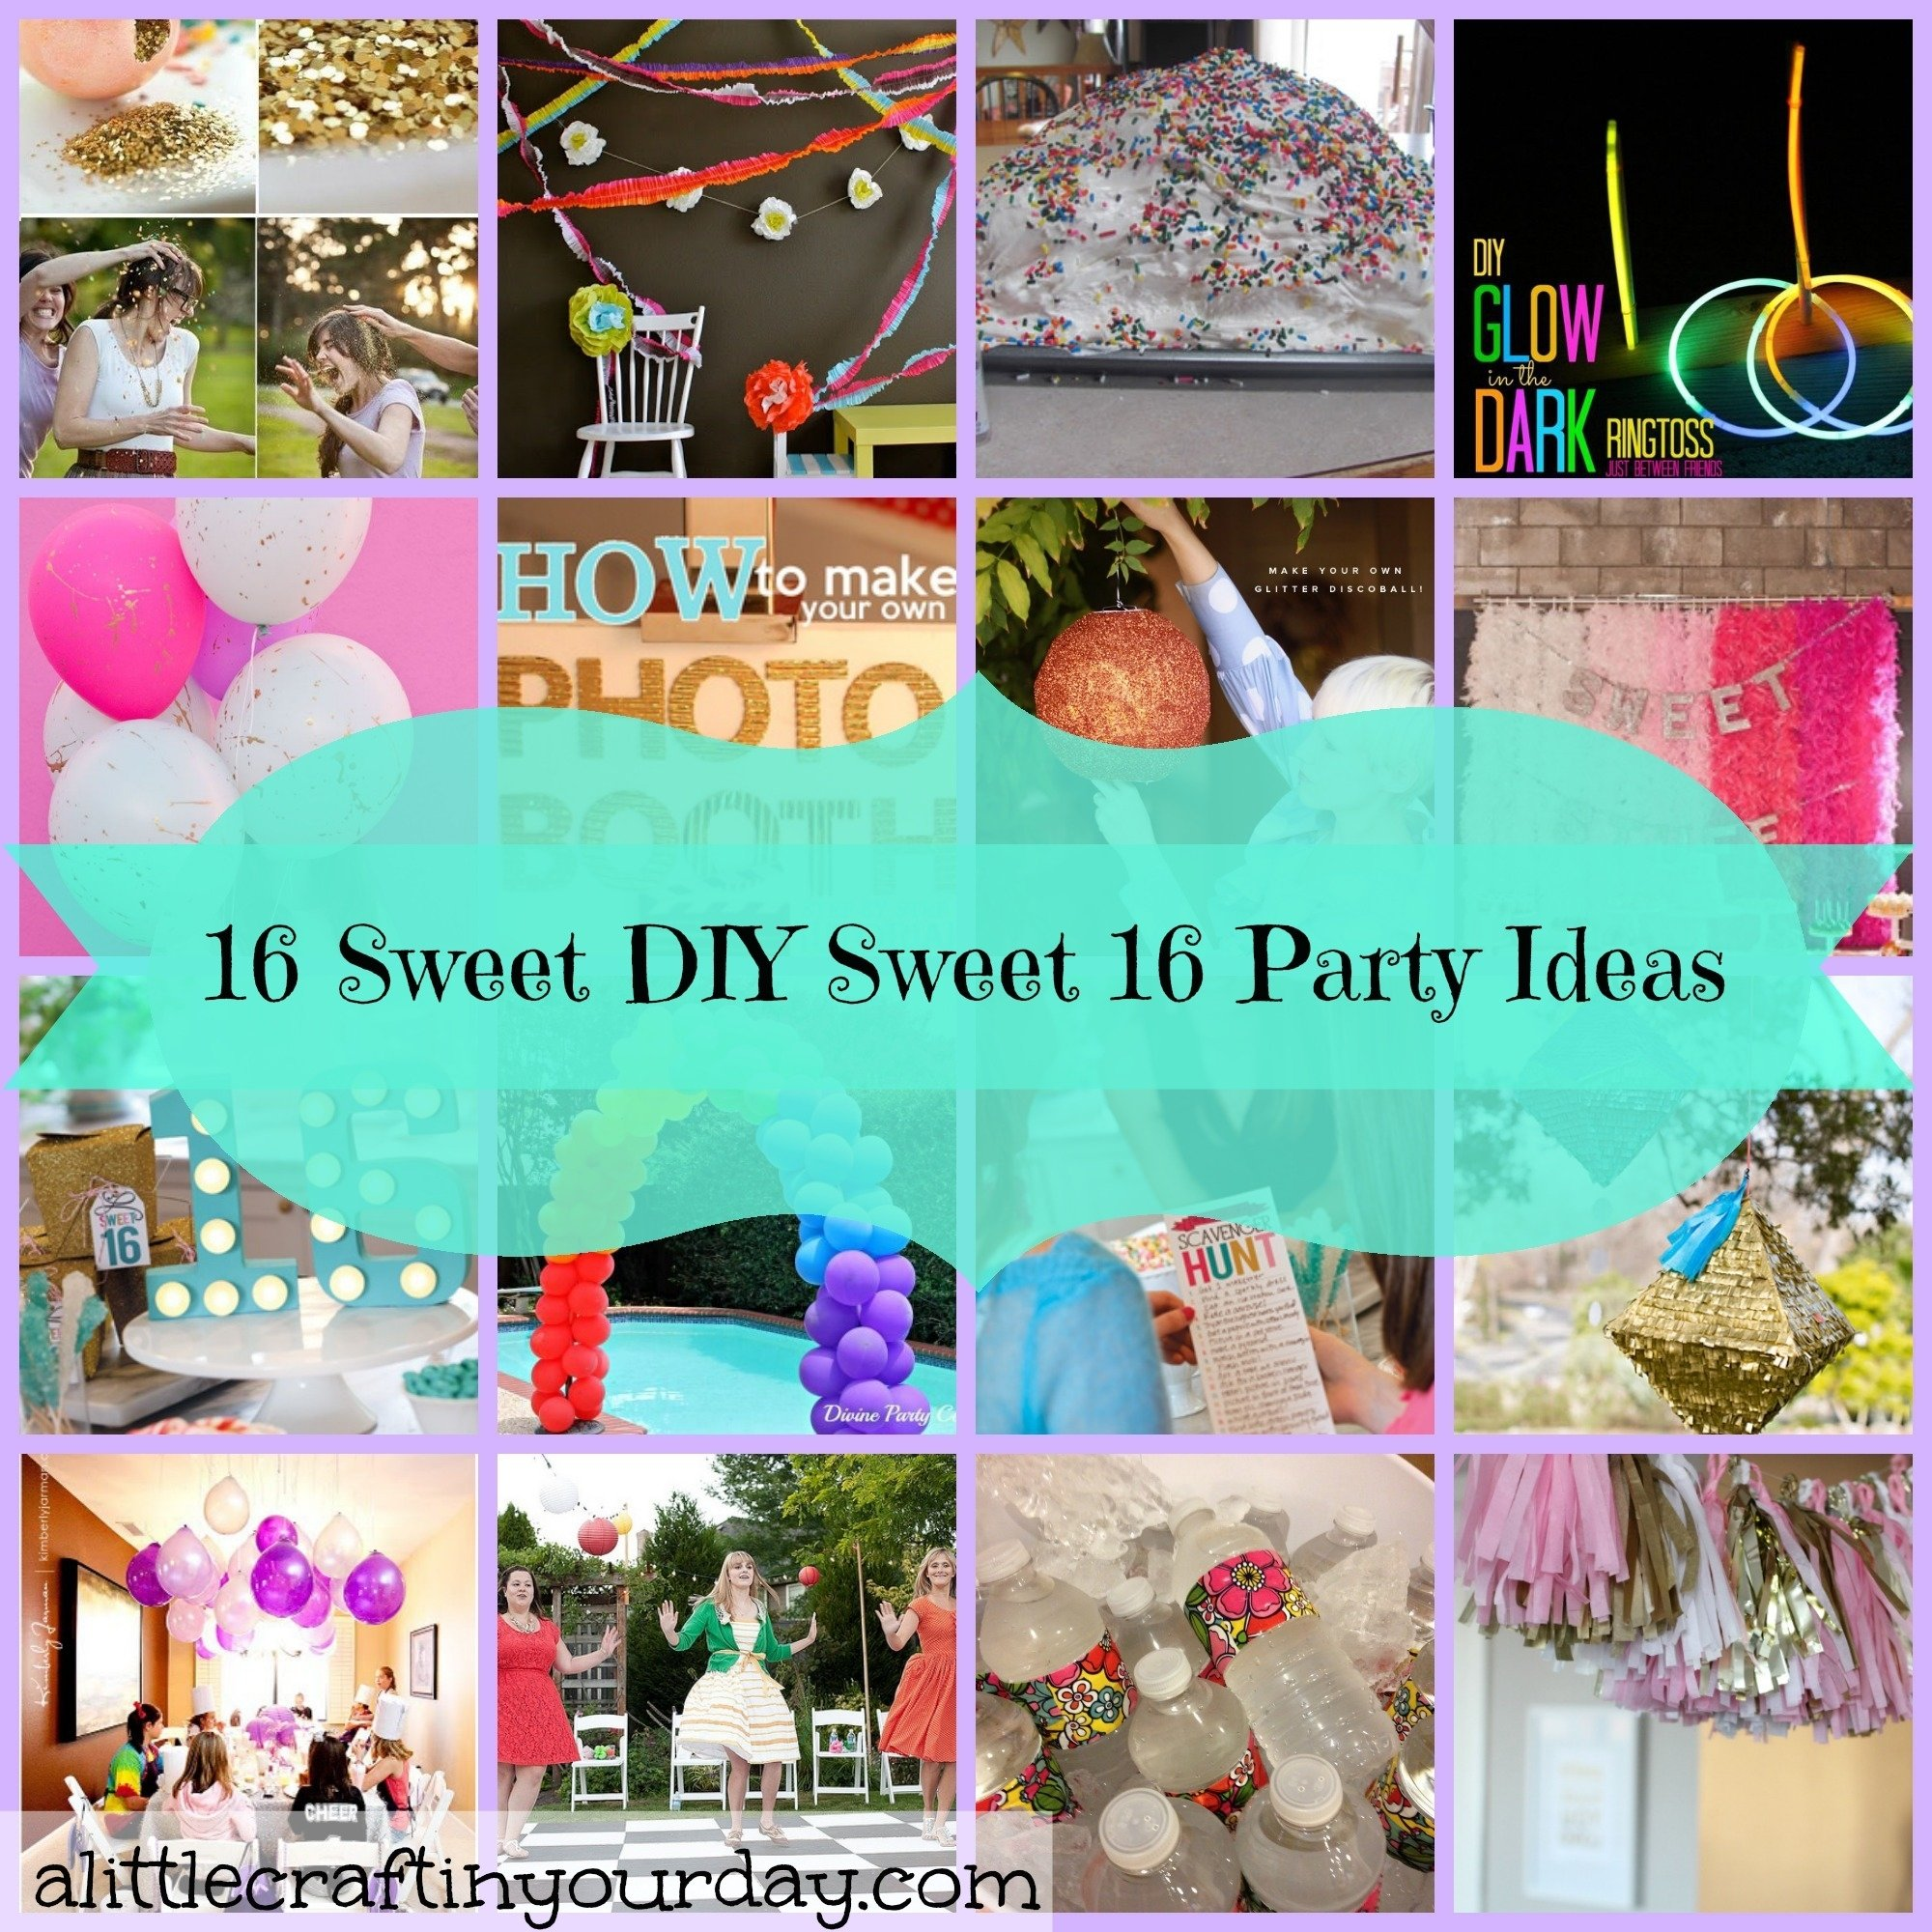 10 Stunning Ideas For A Sweet 16 16 sweet diy sweet 16 party ideas a little craft in your day 6